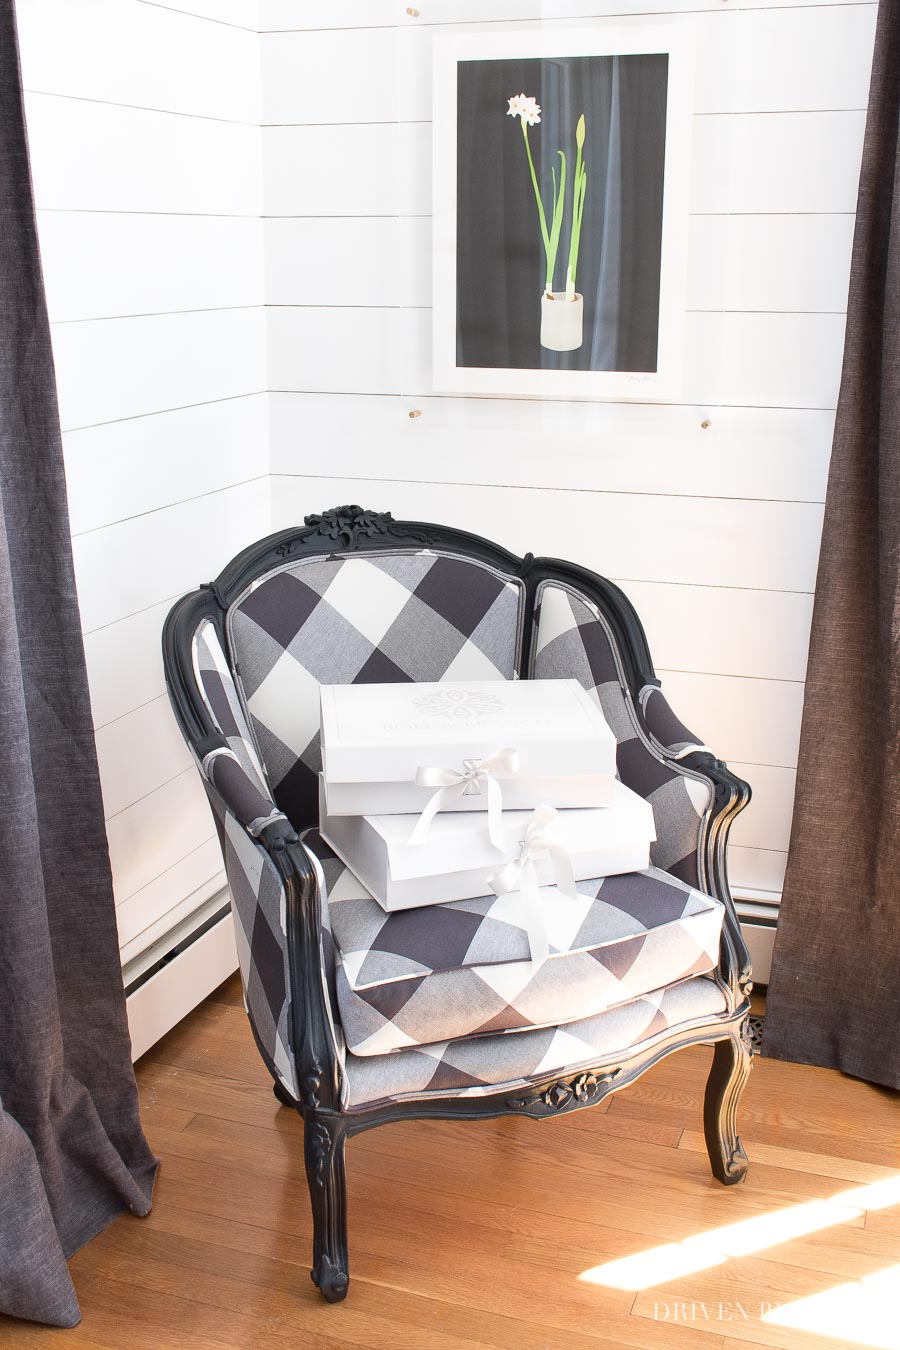 Give an old chair new life by reupholstering in an updated fabric! Love this black and white buffalo check!